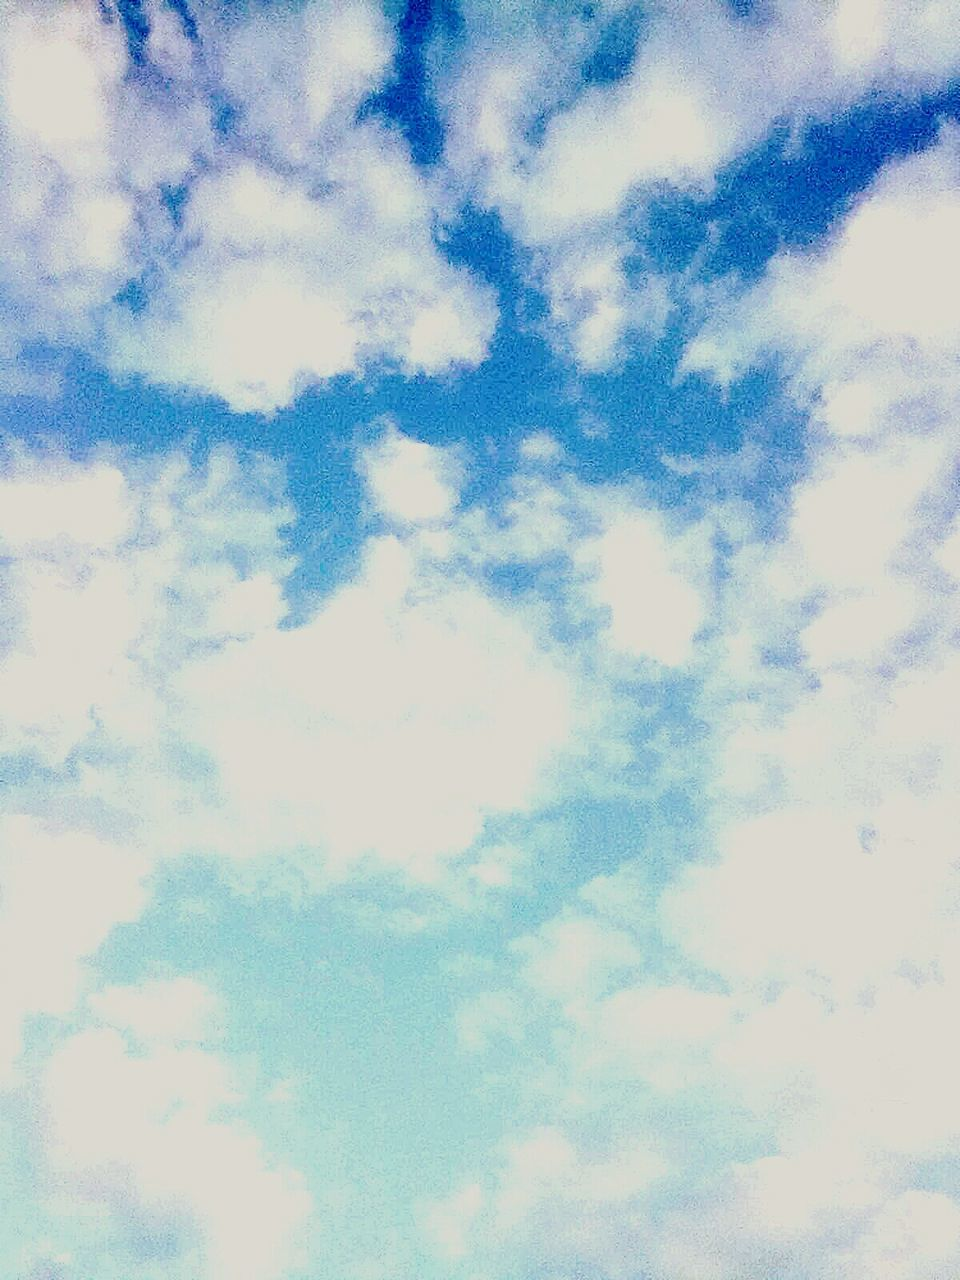 nature, sky, cloud - sky, backgrounds, beauty in nature, low angle view, full frame, tranquility, day, sky only, no people, outdoors, scenics, blue